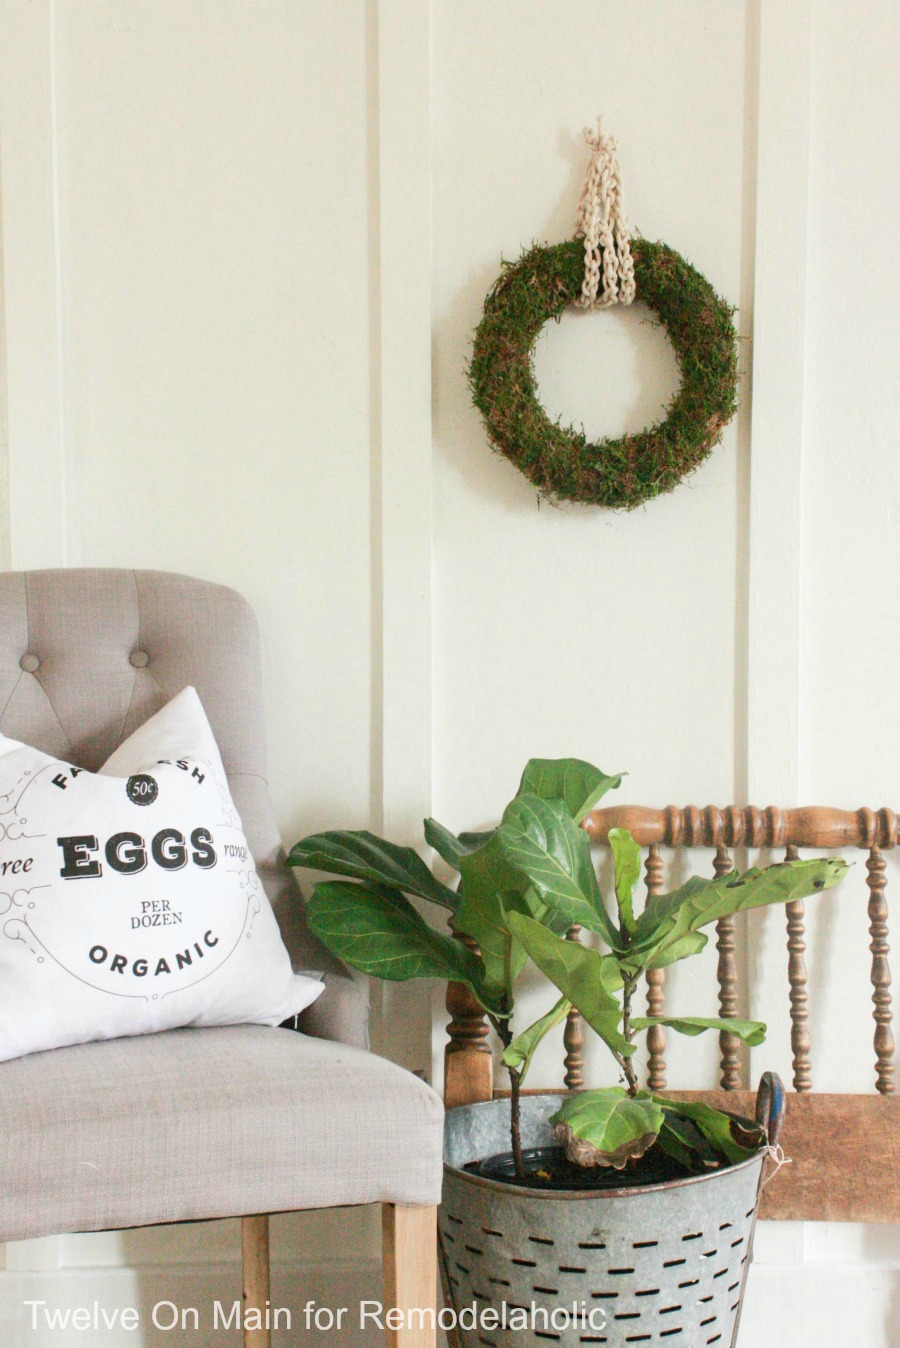 There Are So Many Great Ways To Decorate Walls. I Love This DIY Floor To